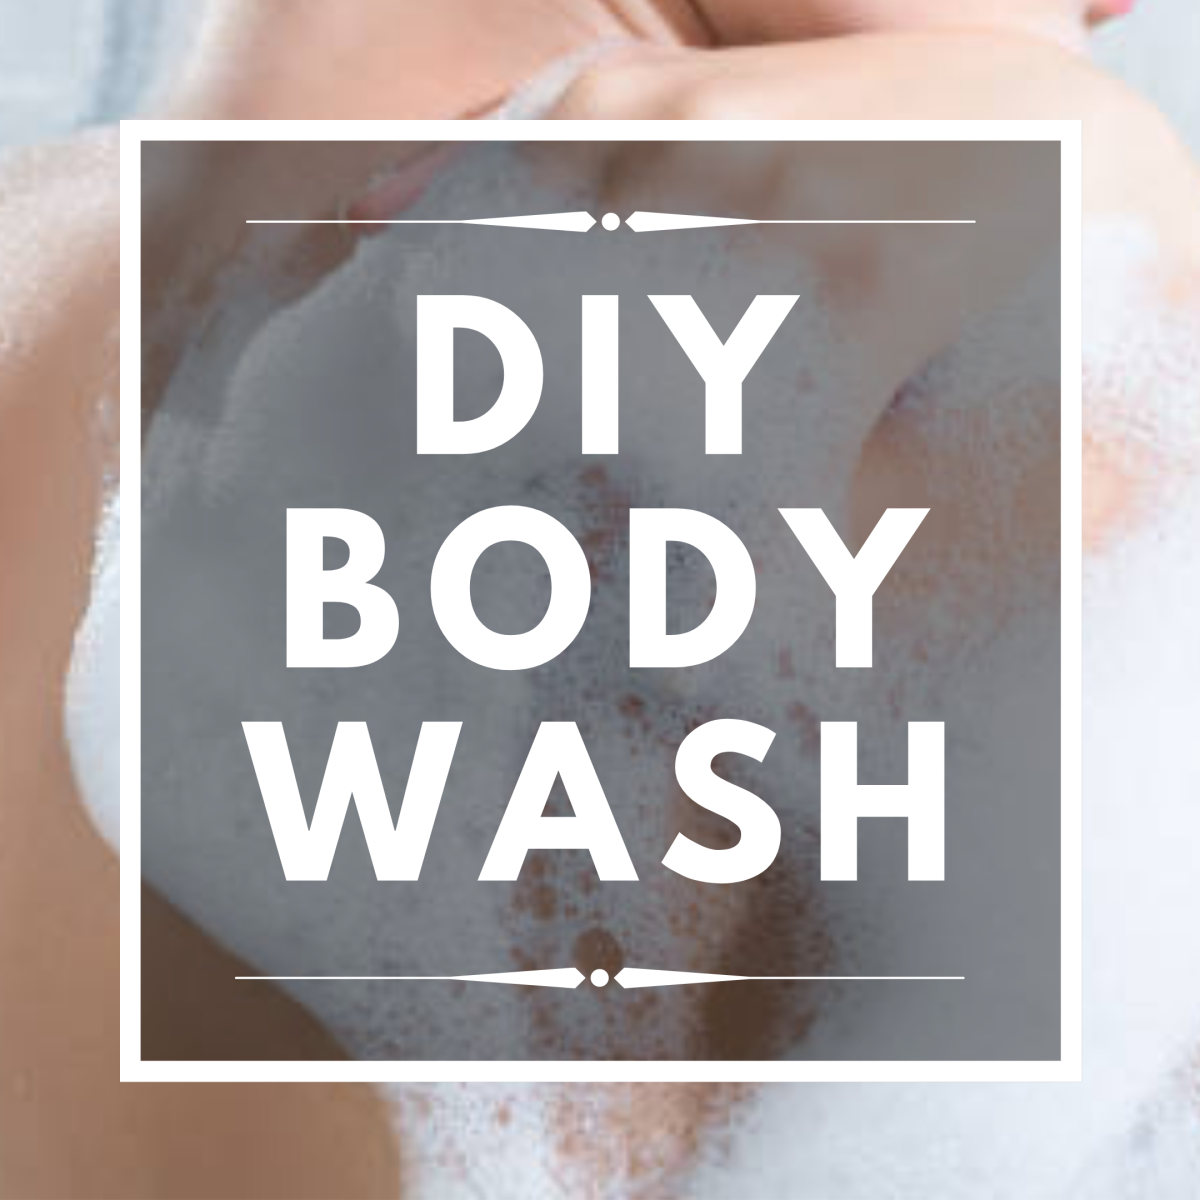 How Do You Make Your Own Body Wash at Home?